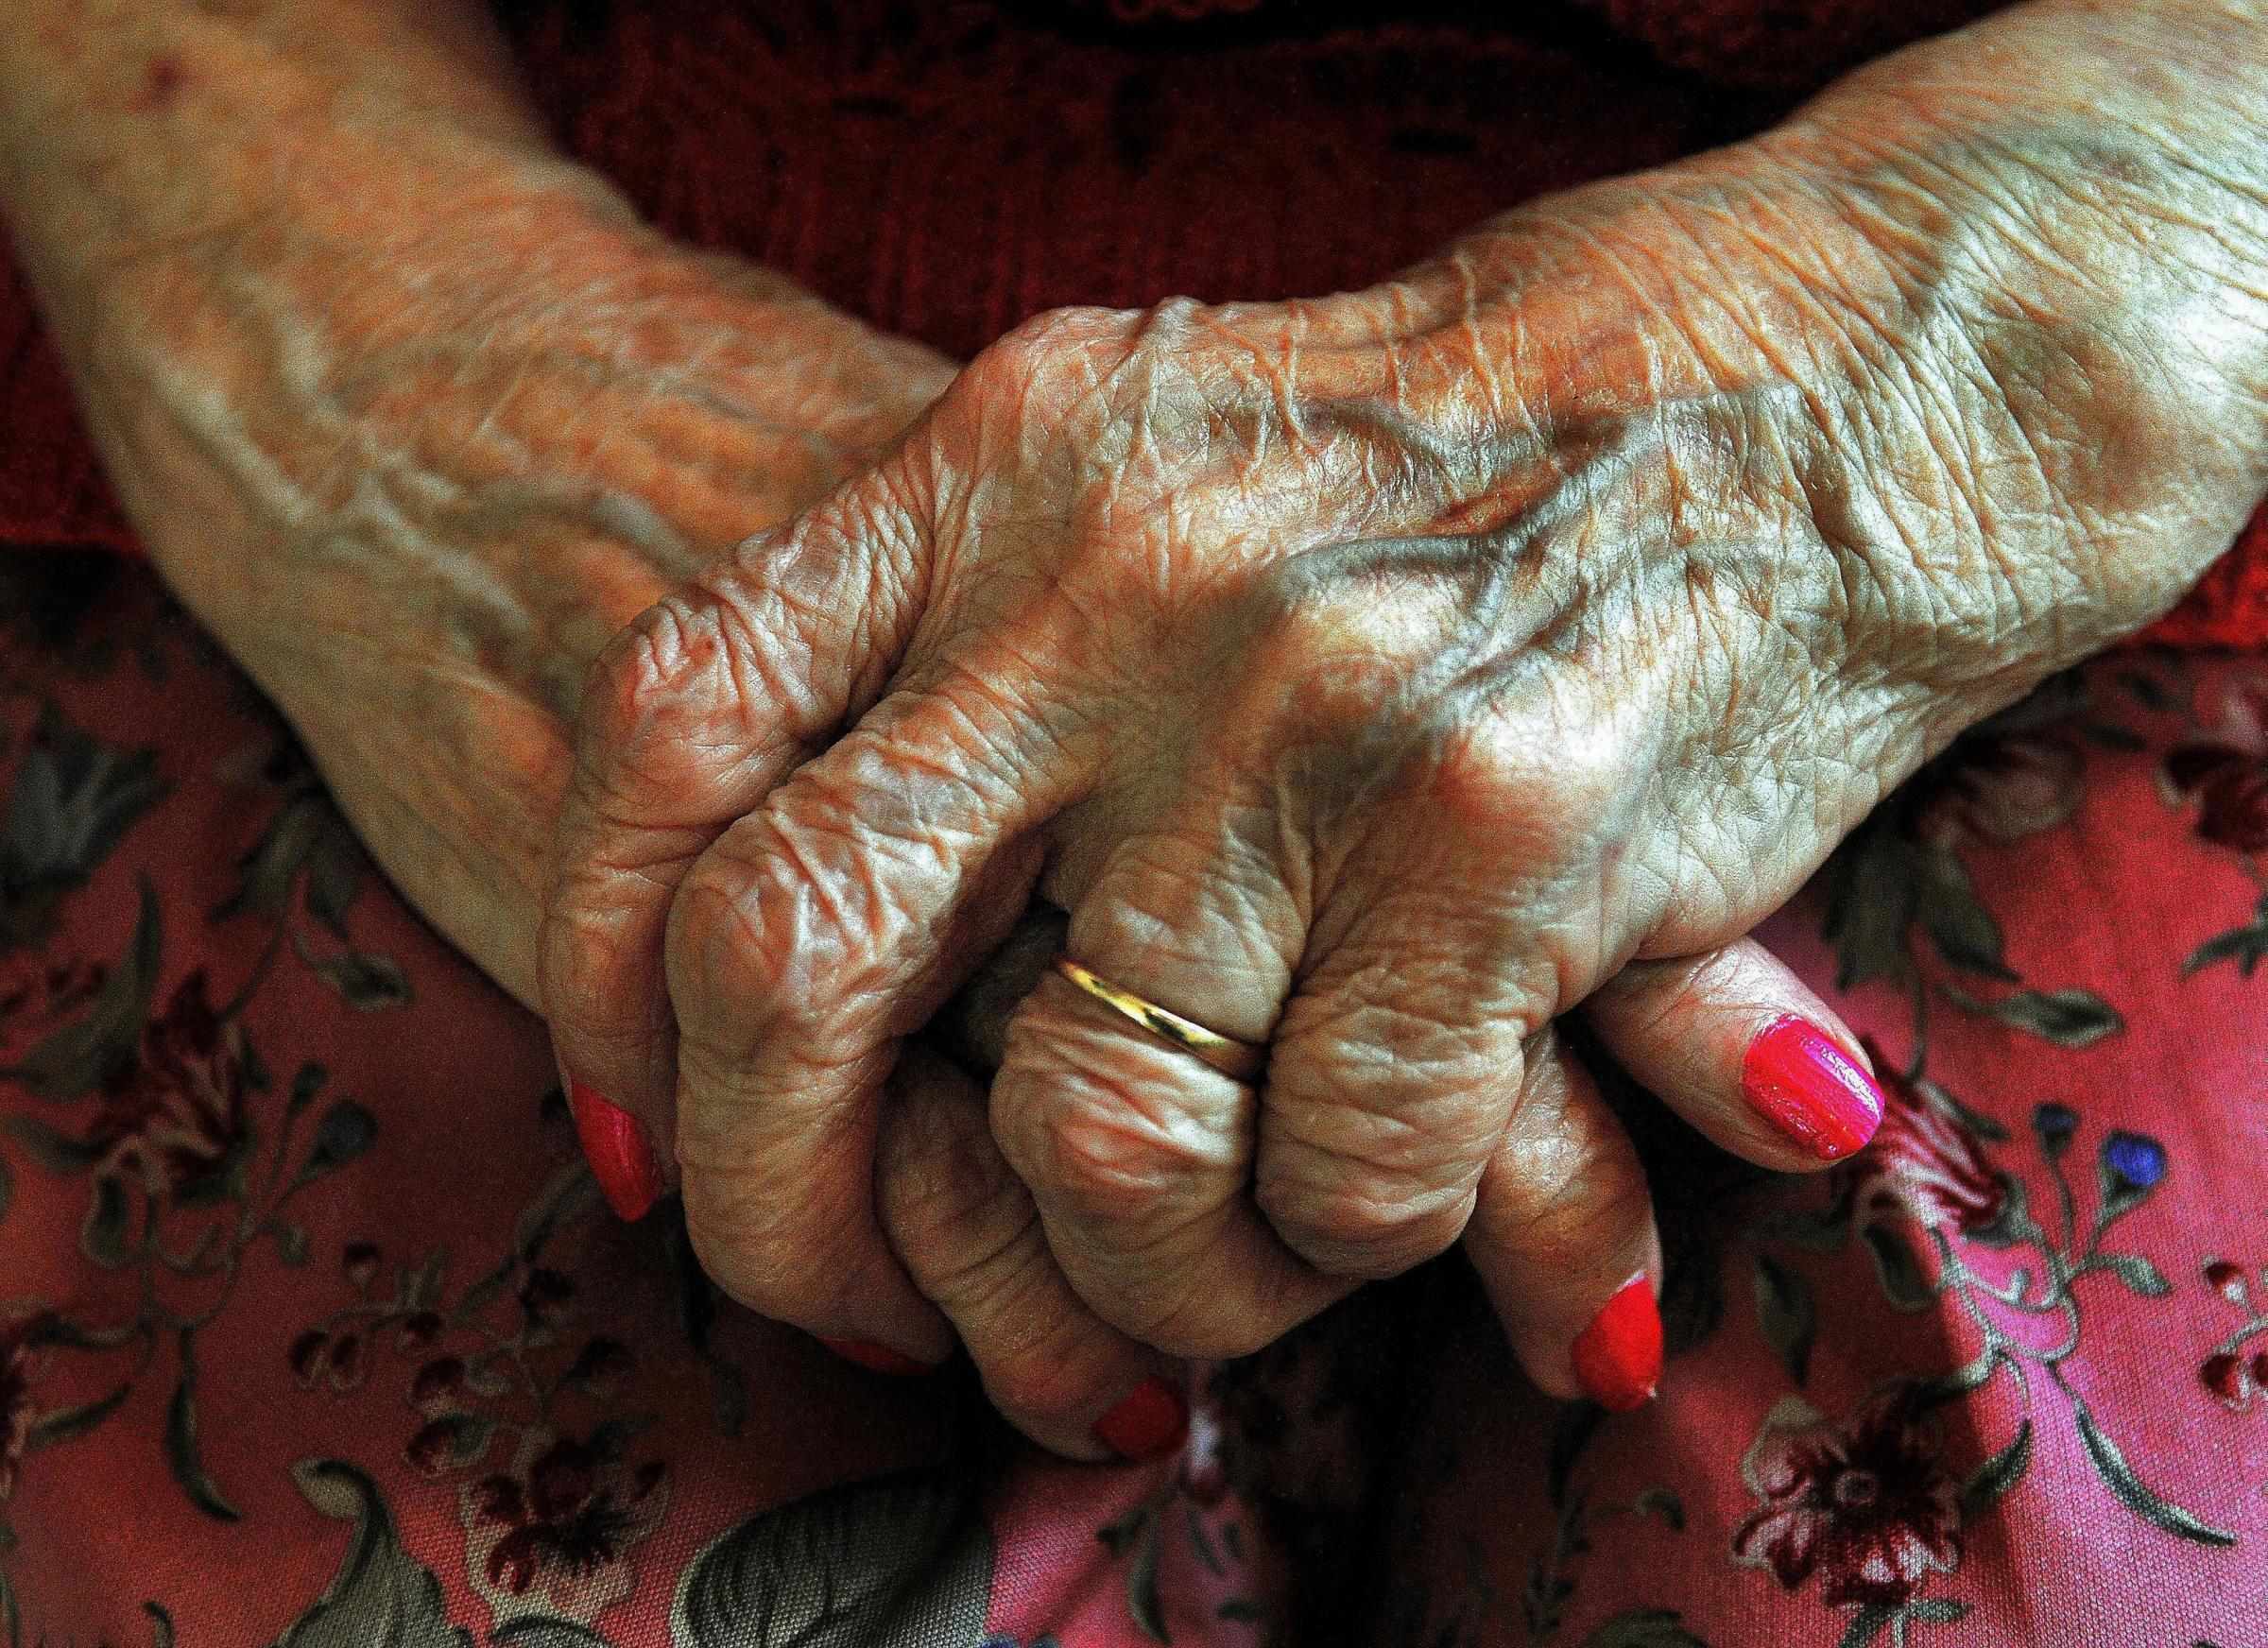 Embargoed to 0001 Monday May 21  File photo dated 05/12/08 of the hands of   an elderly woman. A report has claimed promises to bring more patient care closer to home by prioritising NHS community services have fallen flat. PRESS ASSOCIATI